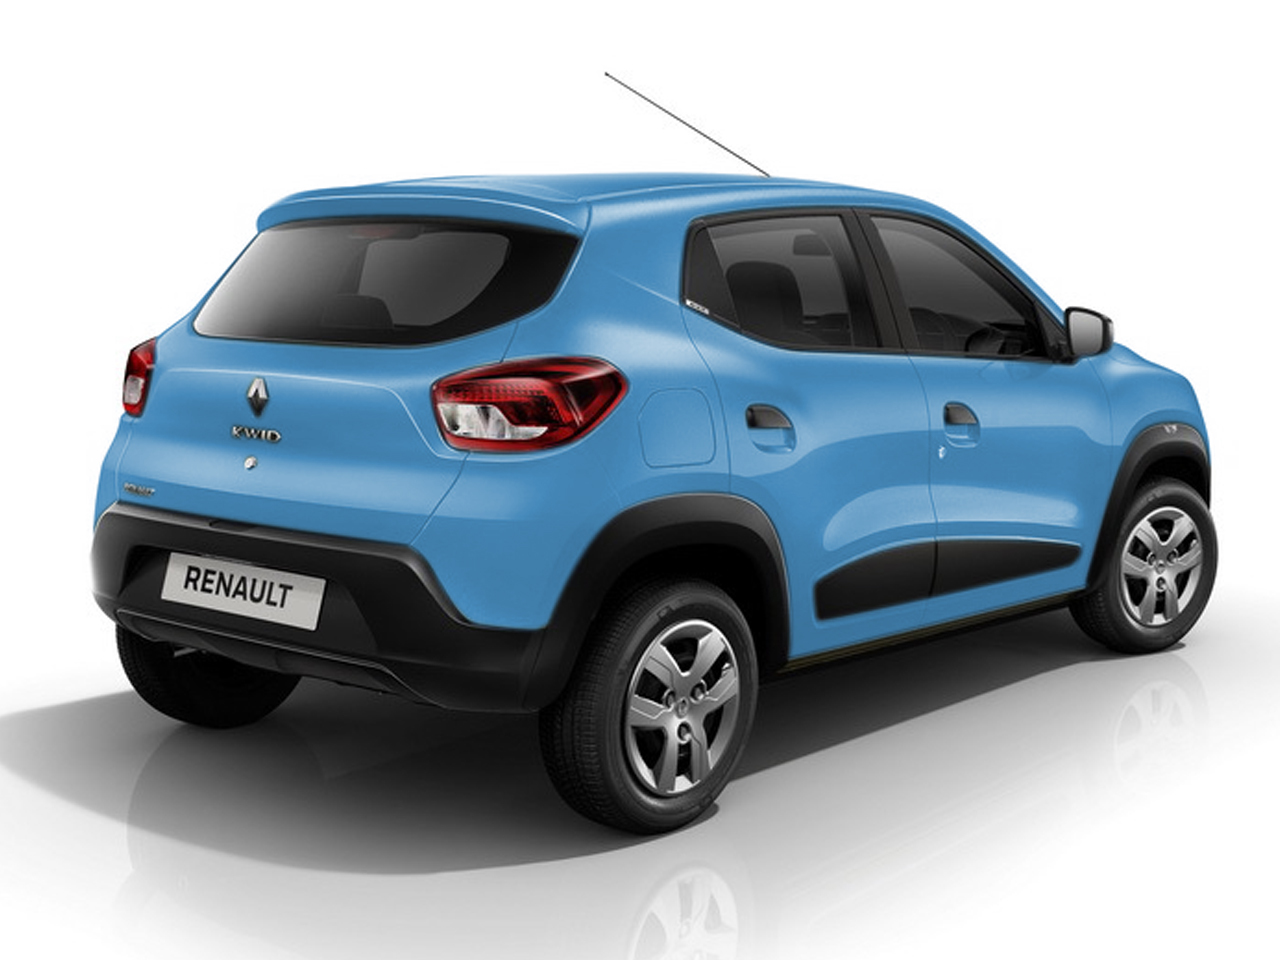 renault kwid la citadine 3 500 euros en inde. Black Bedroom Furniture Sets. Home Design Ideas